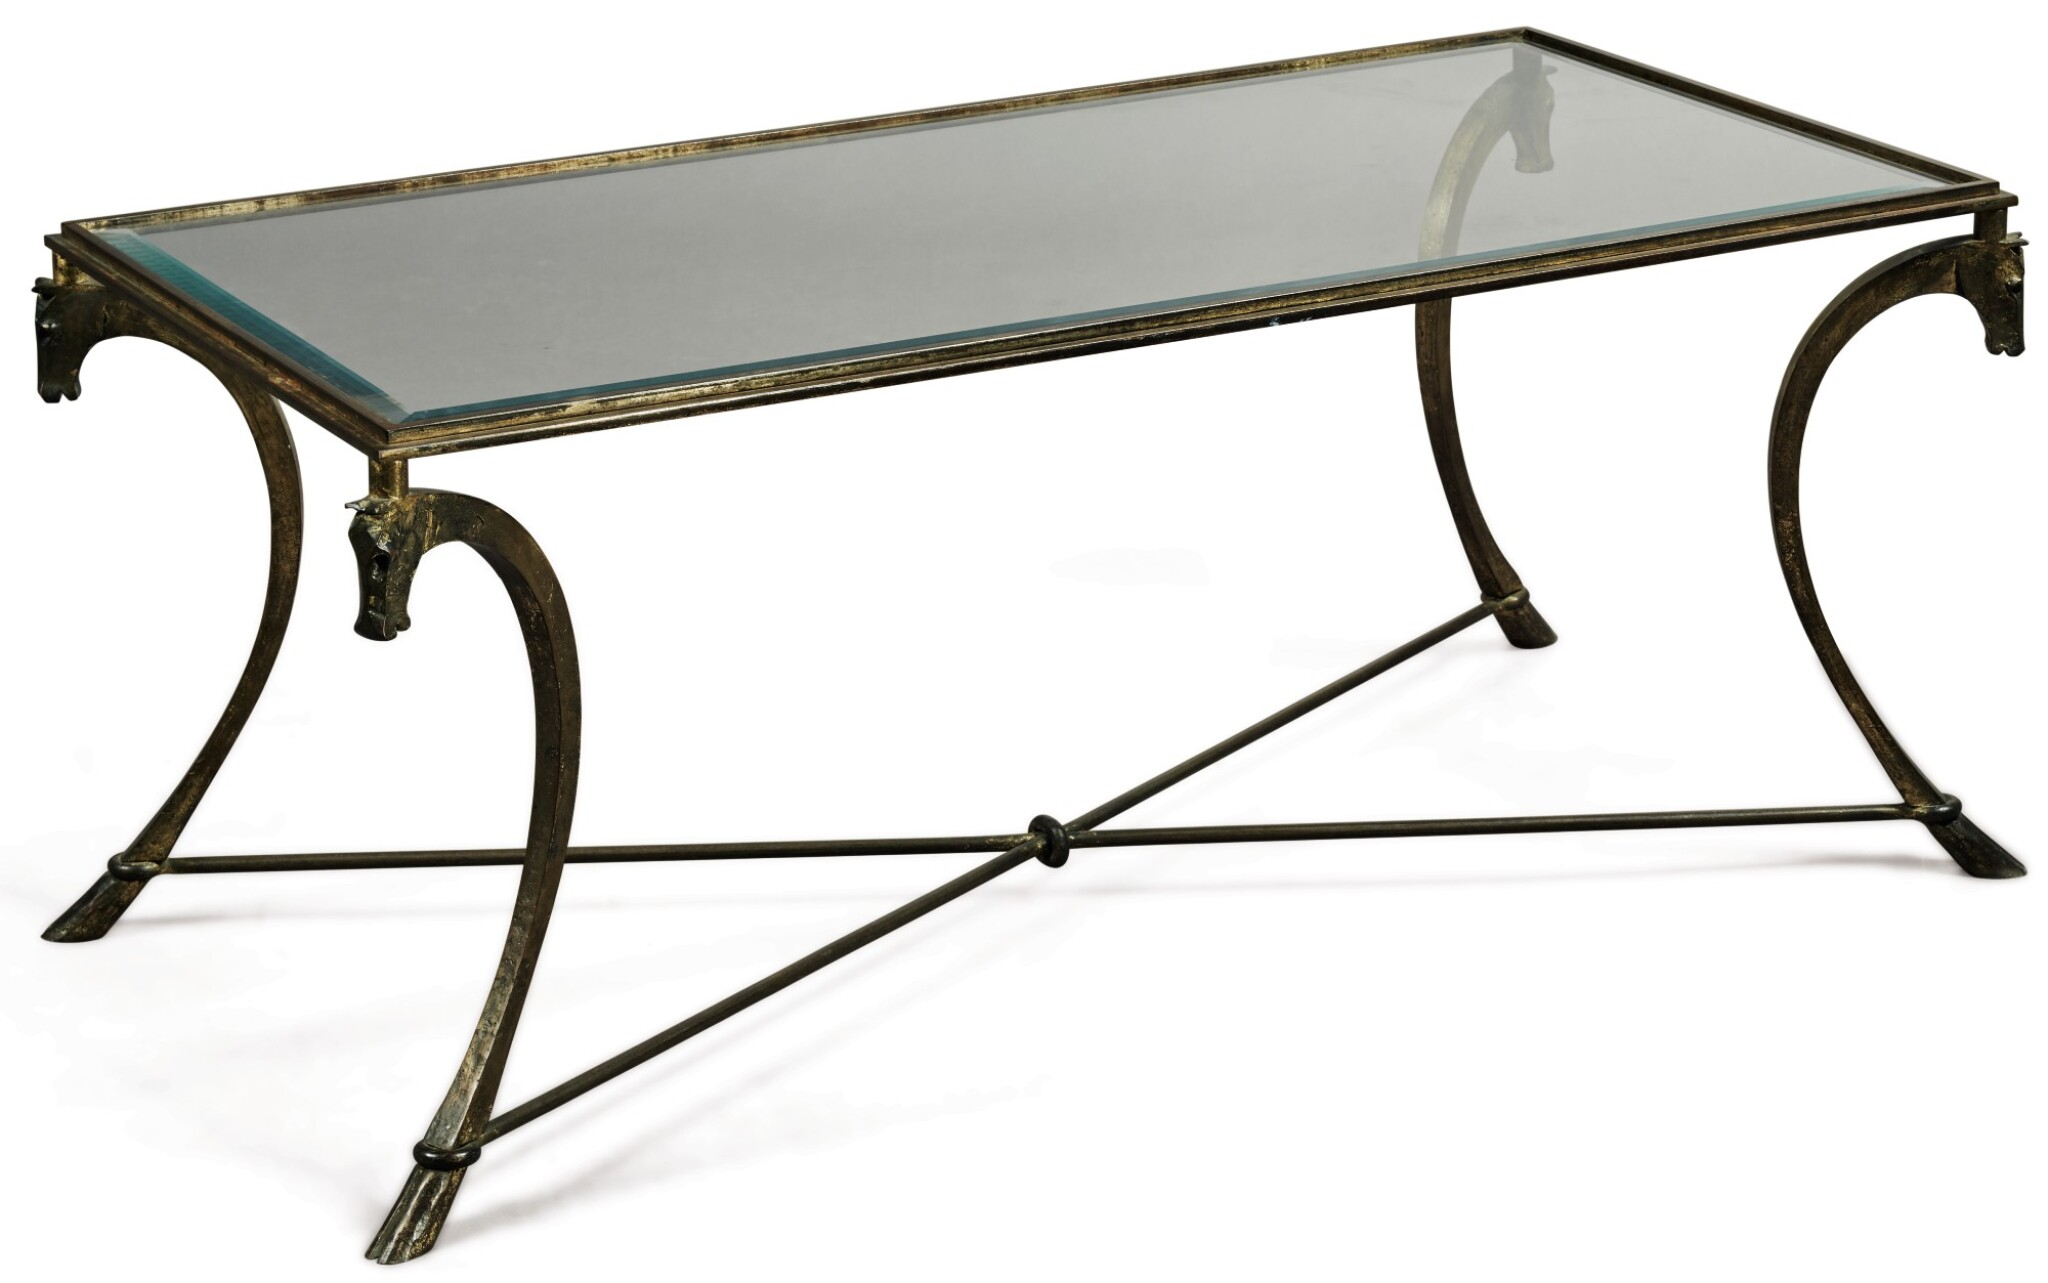 View full screen - View 1 of Lot 1490. FRENCH WROUGHT IRON AND GLASS COFFEE TABLE, ATTRIBUTED TO RAMSEY, CIRCA 1945.